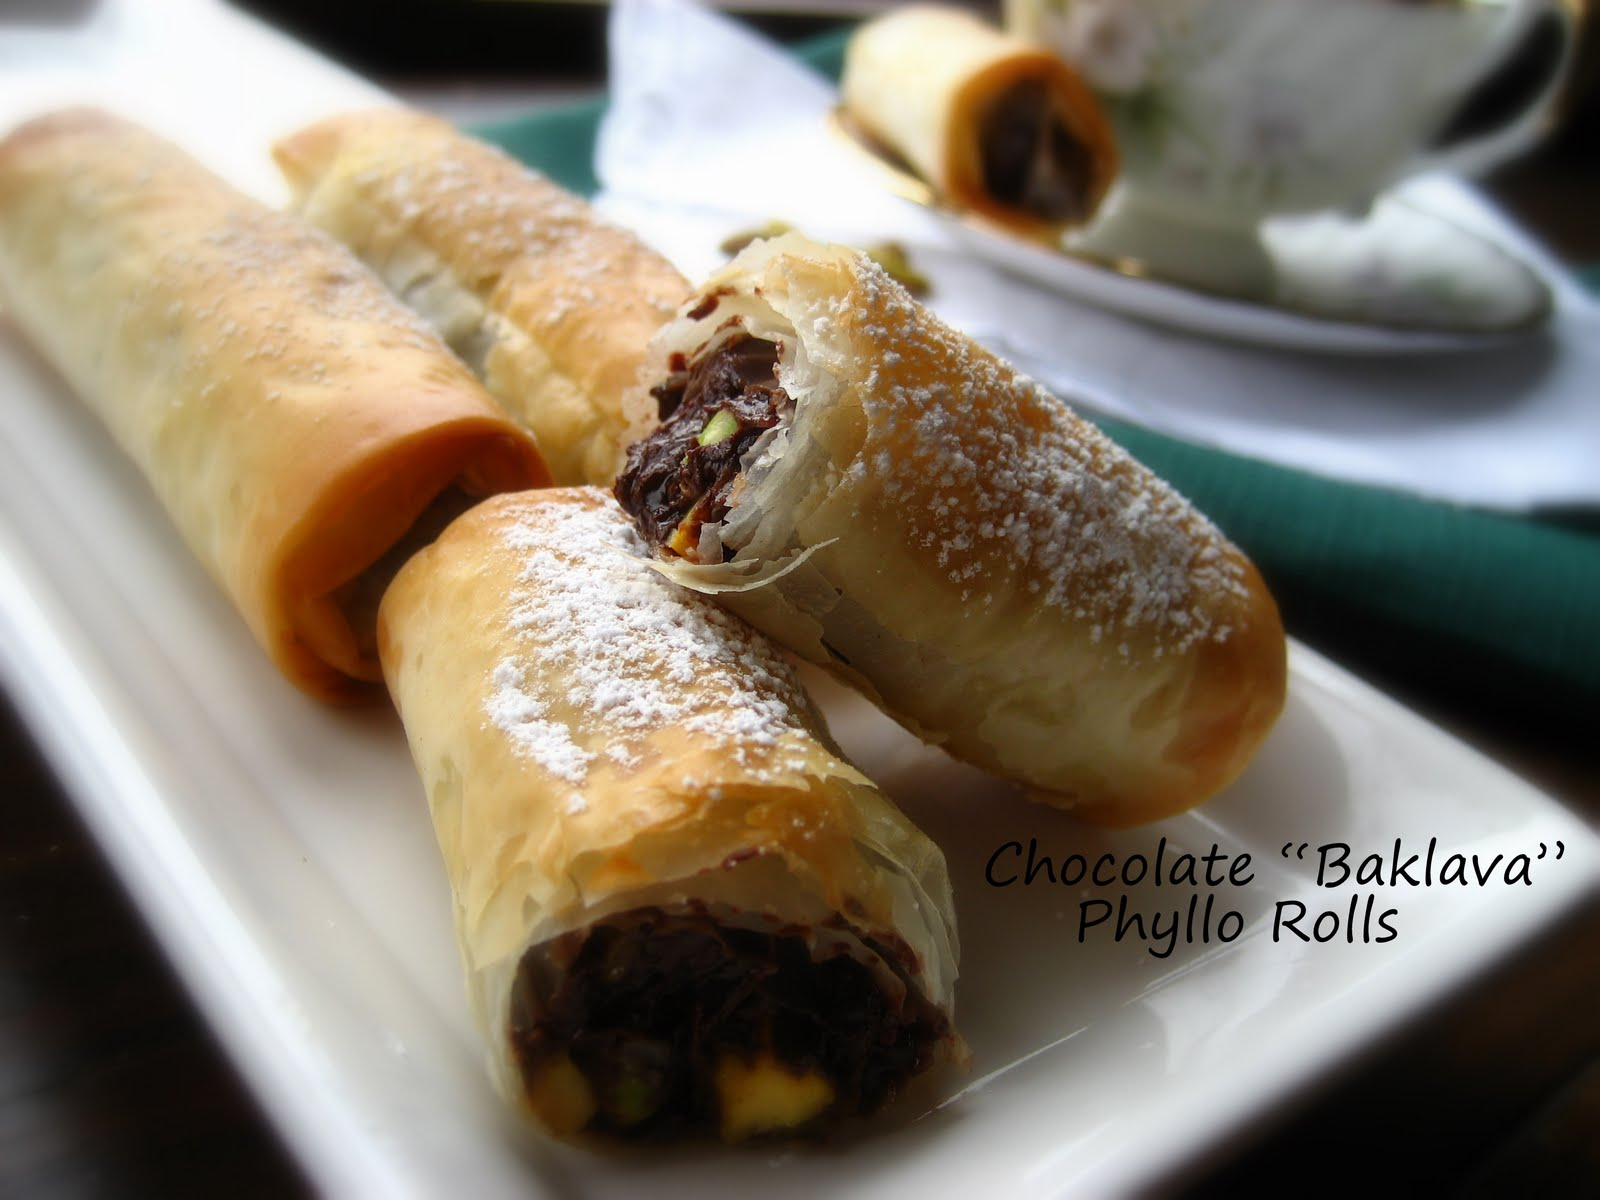 Home Cooking In Montana: Chocolate-Pistachio Phyllo Rolls ...